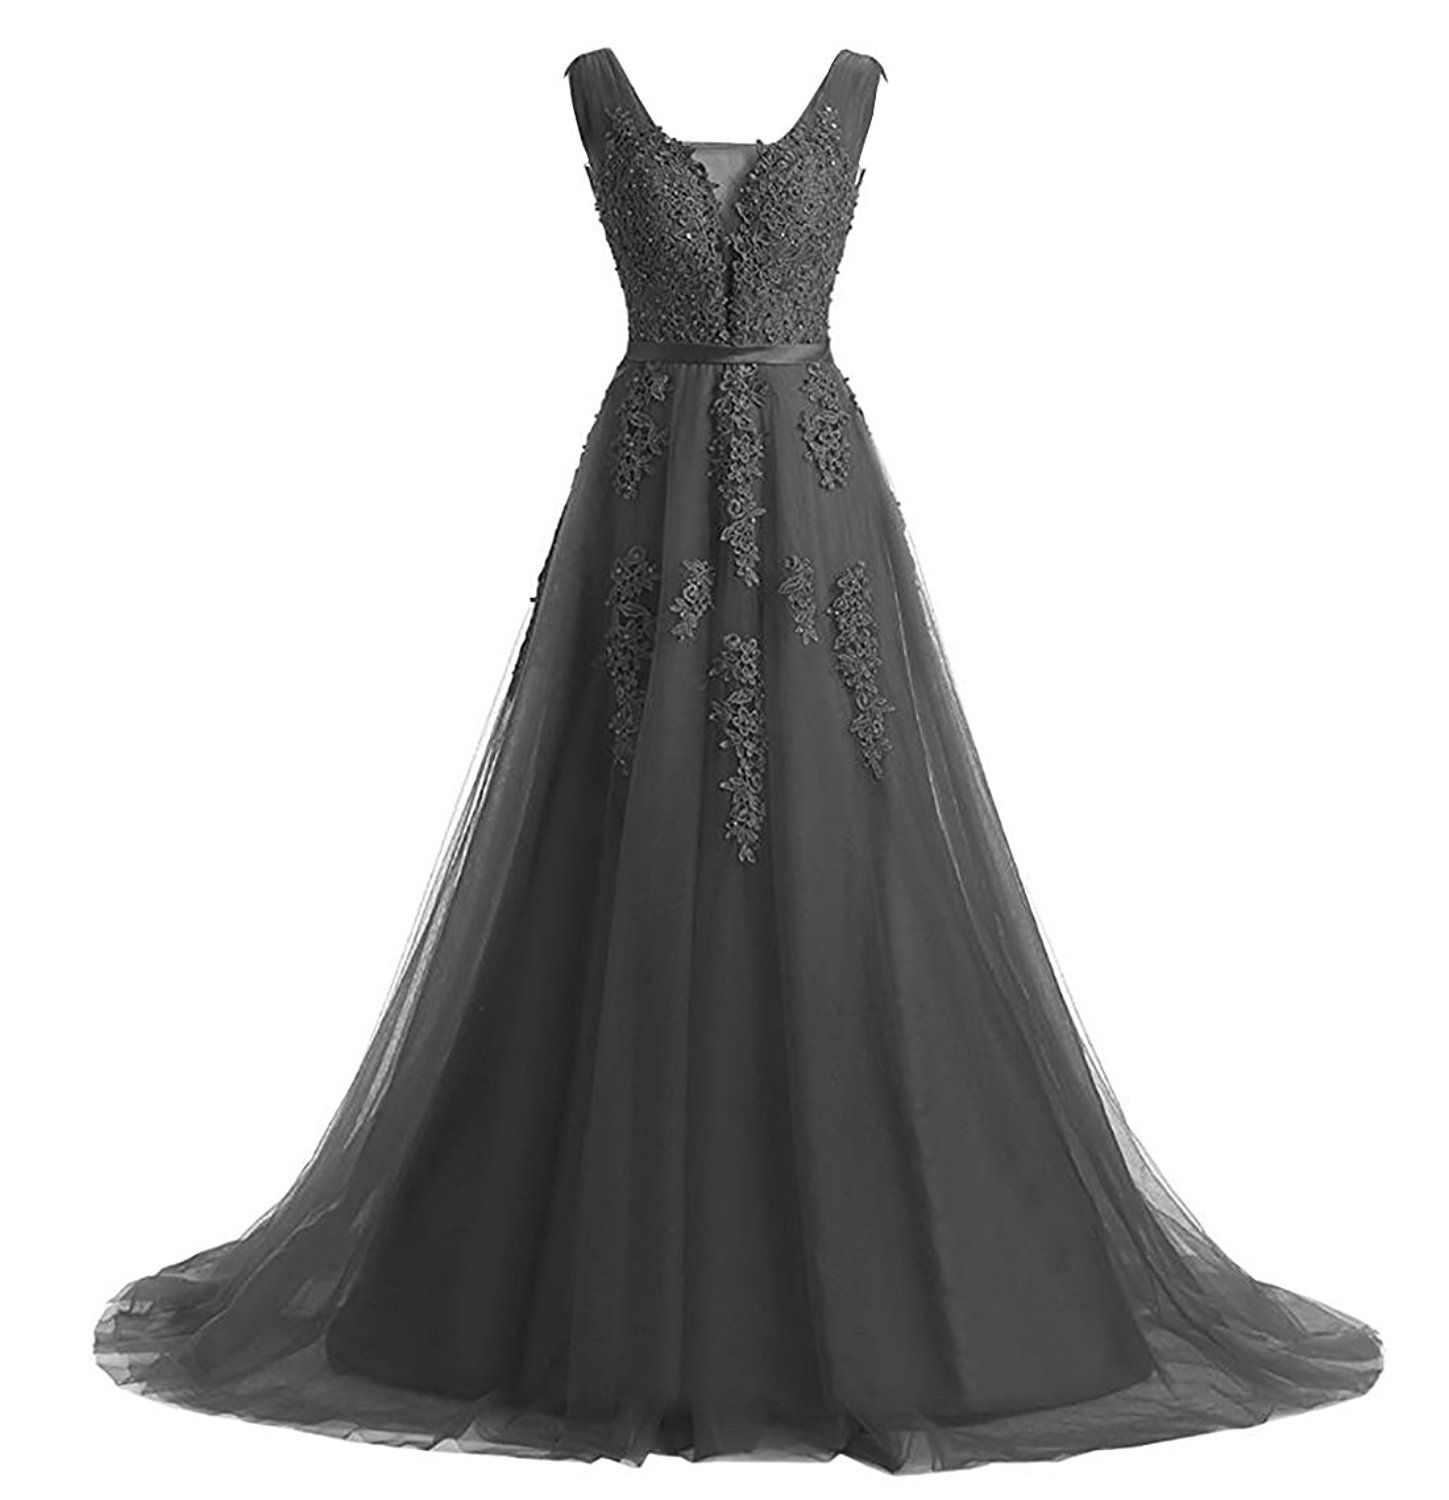 Yinyyinhs womenus vintage tulle beaded lace appliques evening long